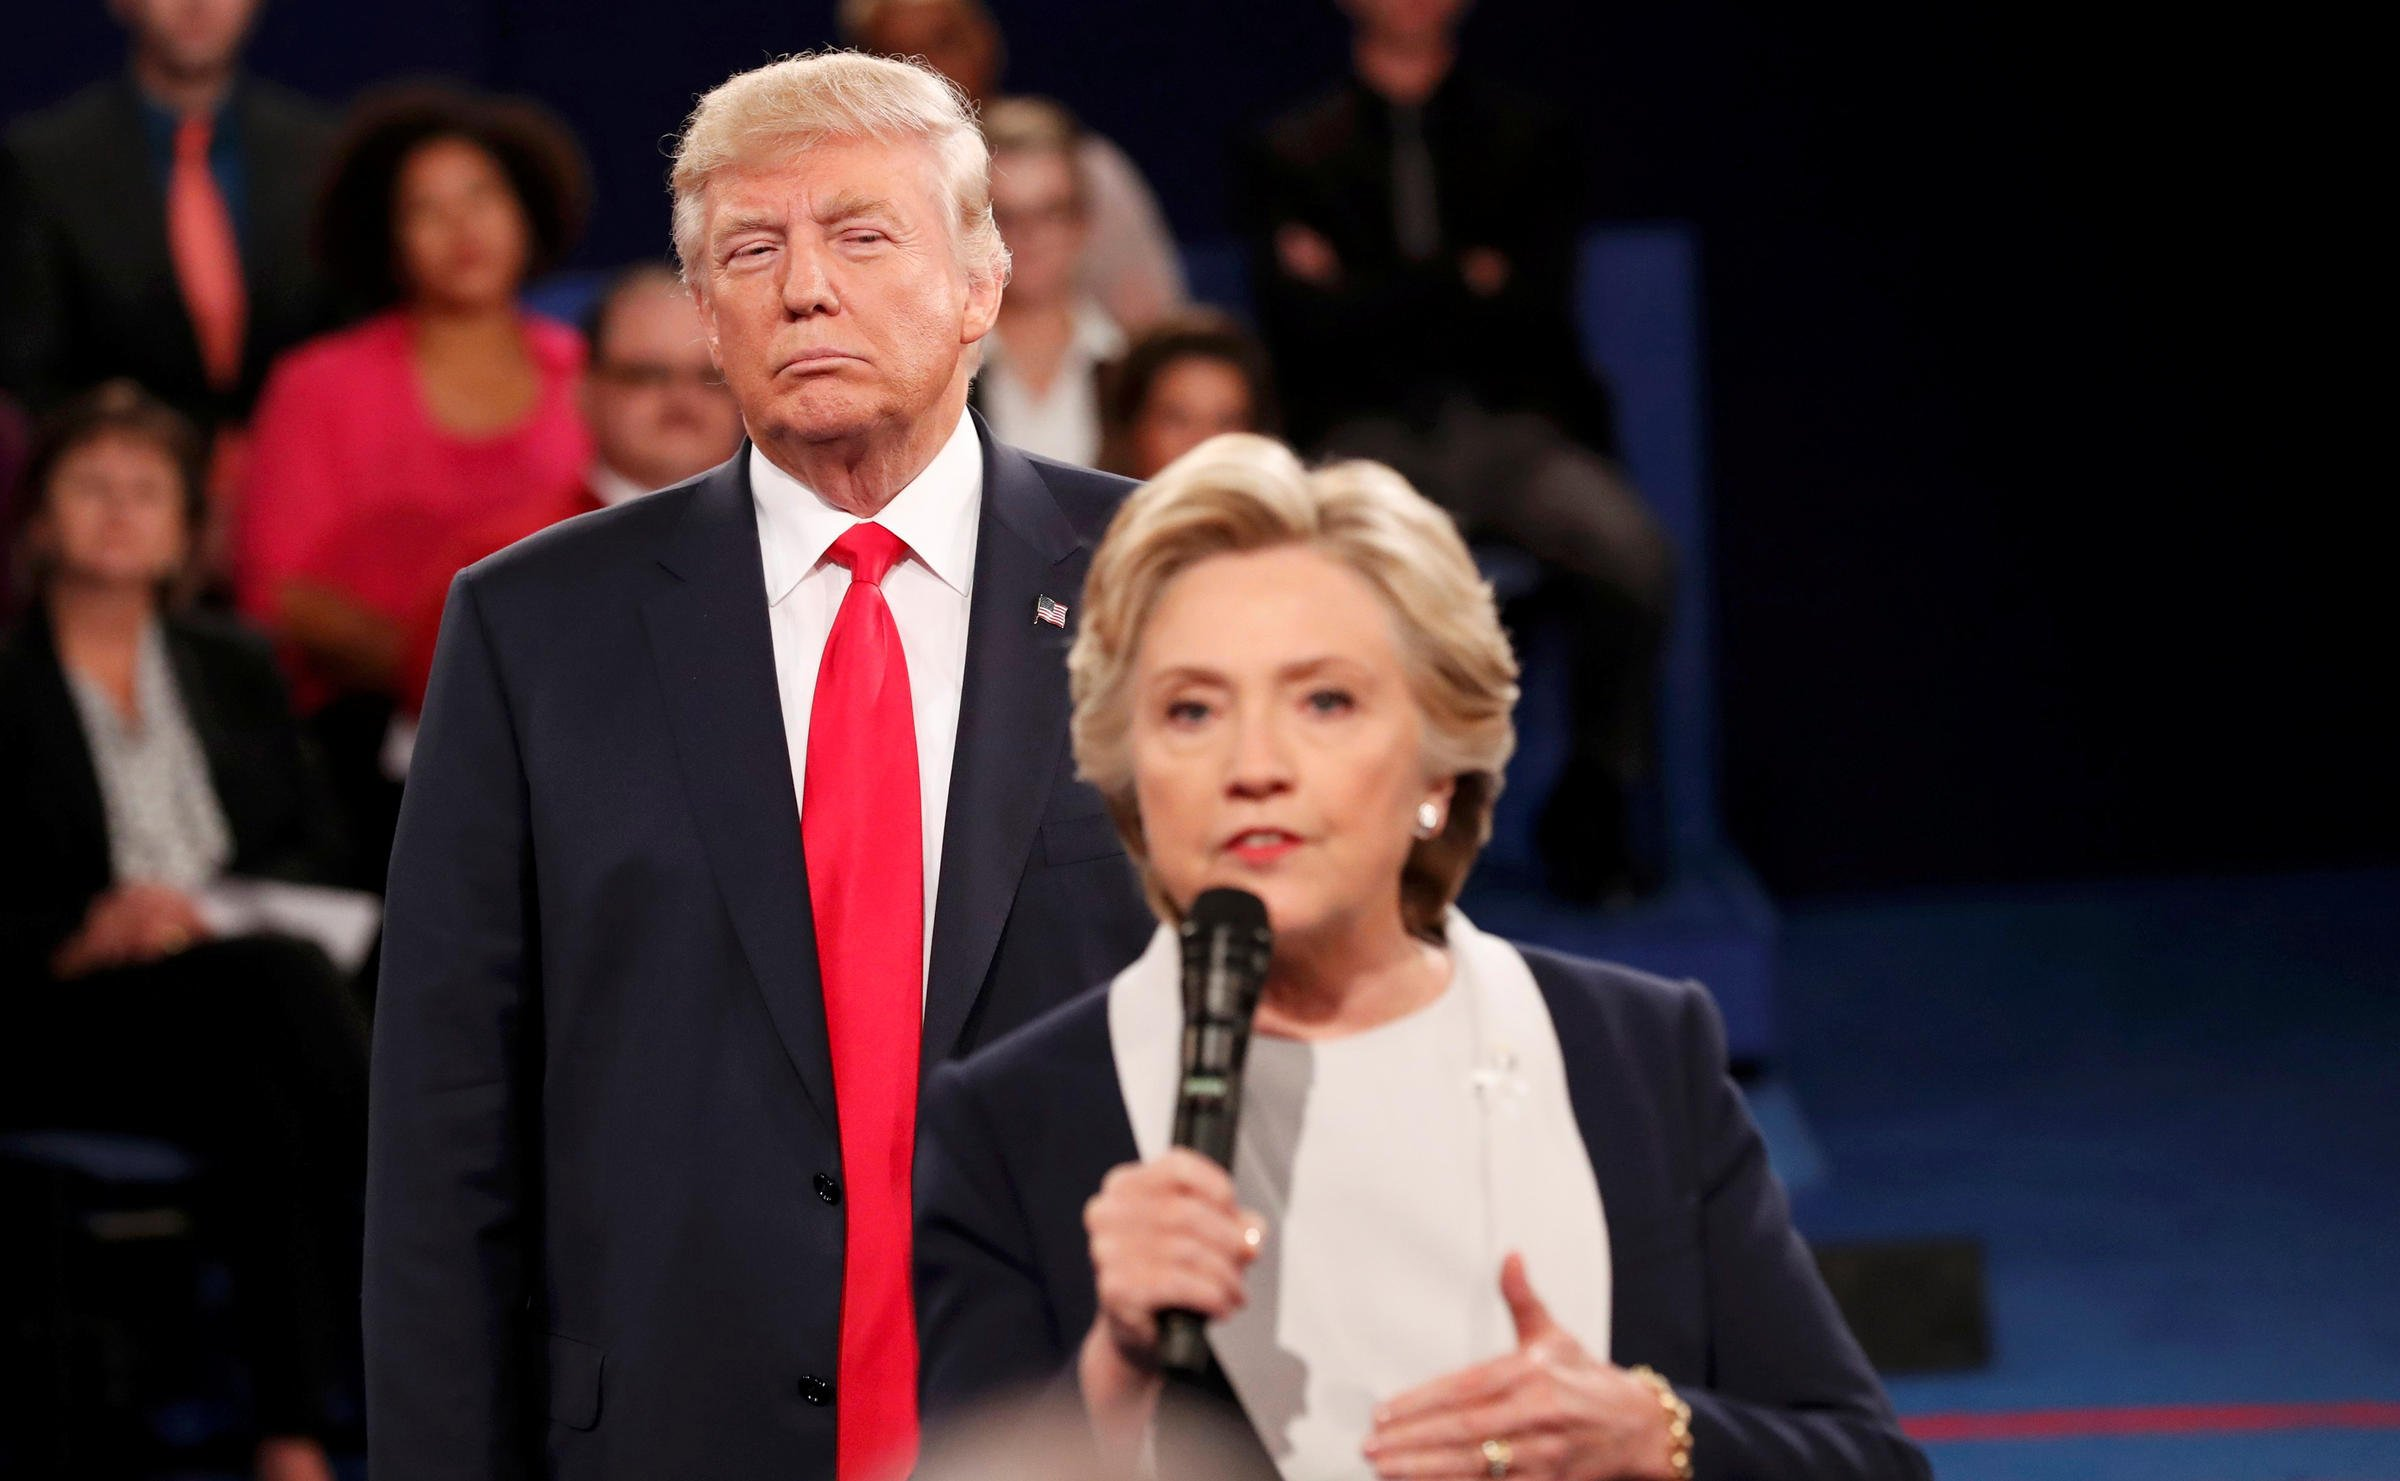 Donald Trump was the man Hillary Clinton needed to win the women's vote | WUNC